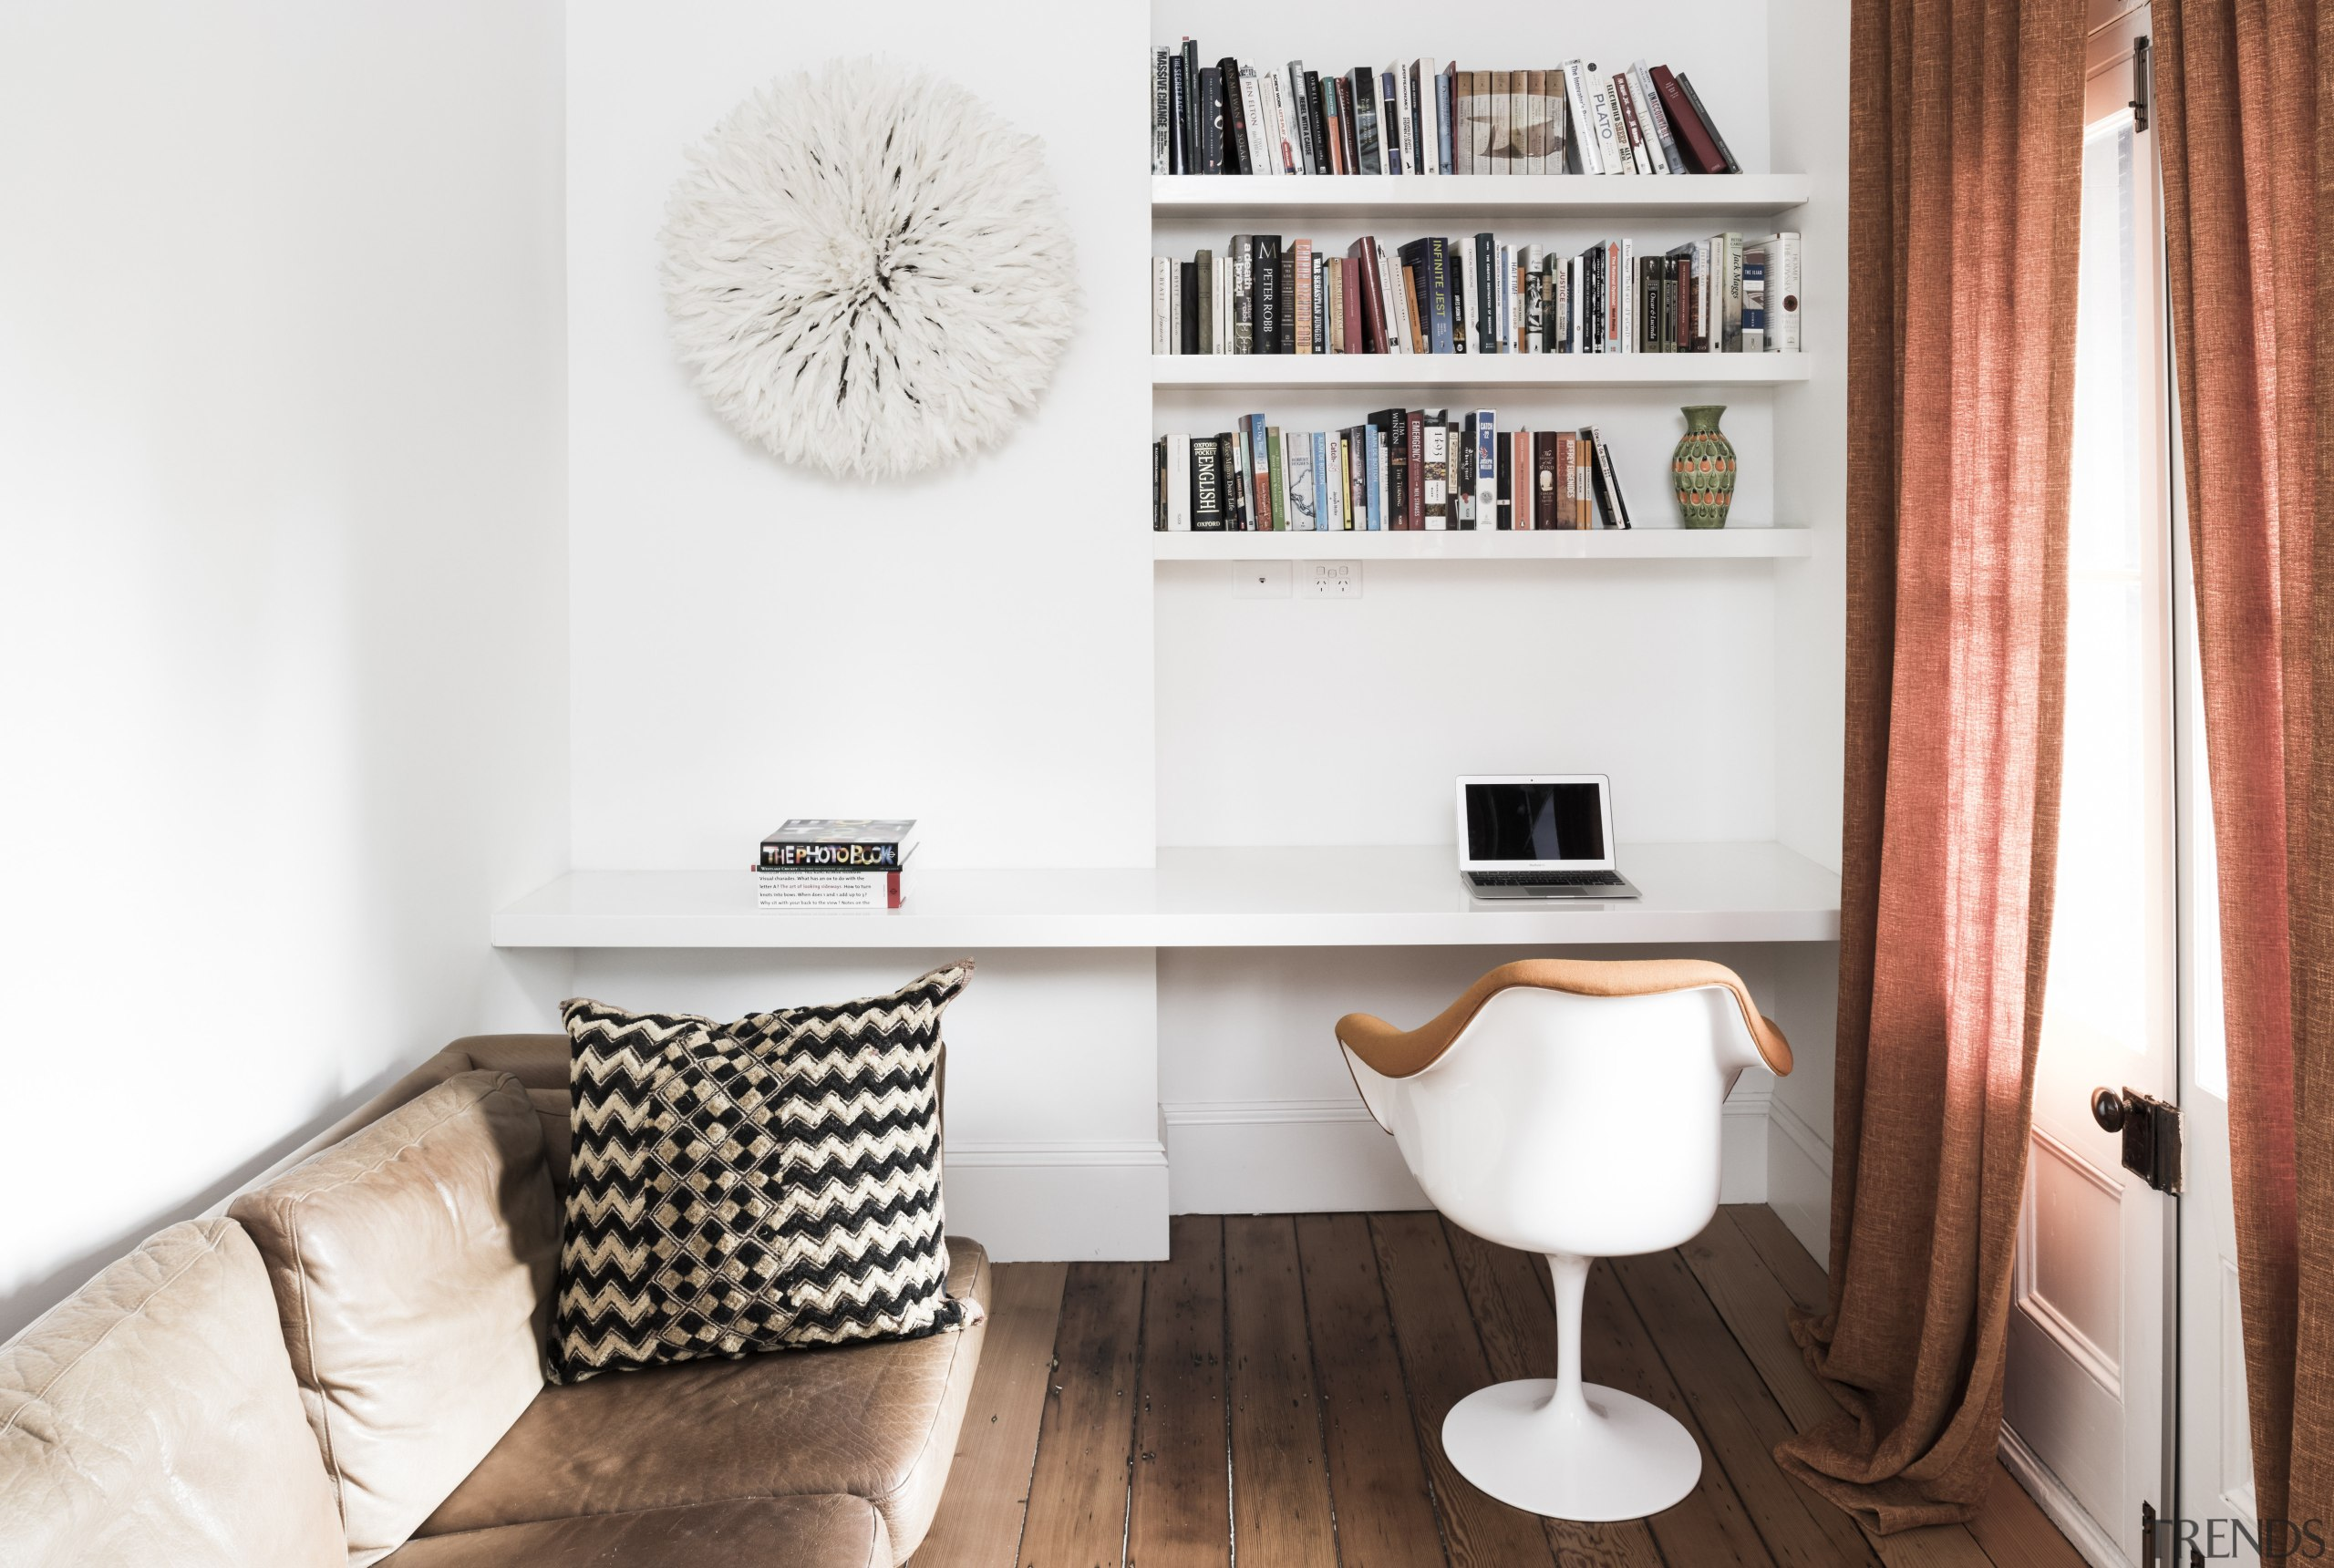 For this terrace house renovation, an awkward, oversized chair, desk, furniture, home, interior design, living room, product design, room, shelf, shelving, table, white